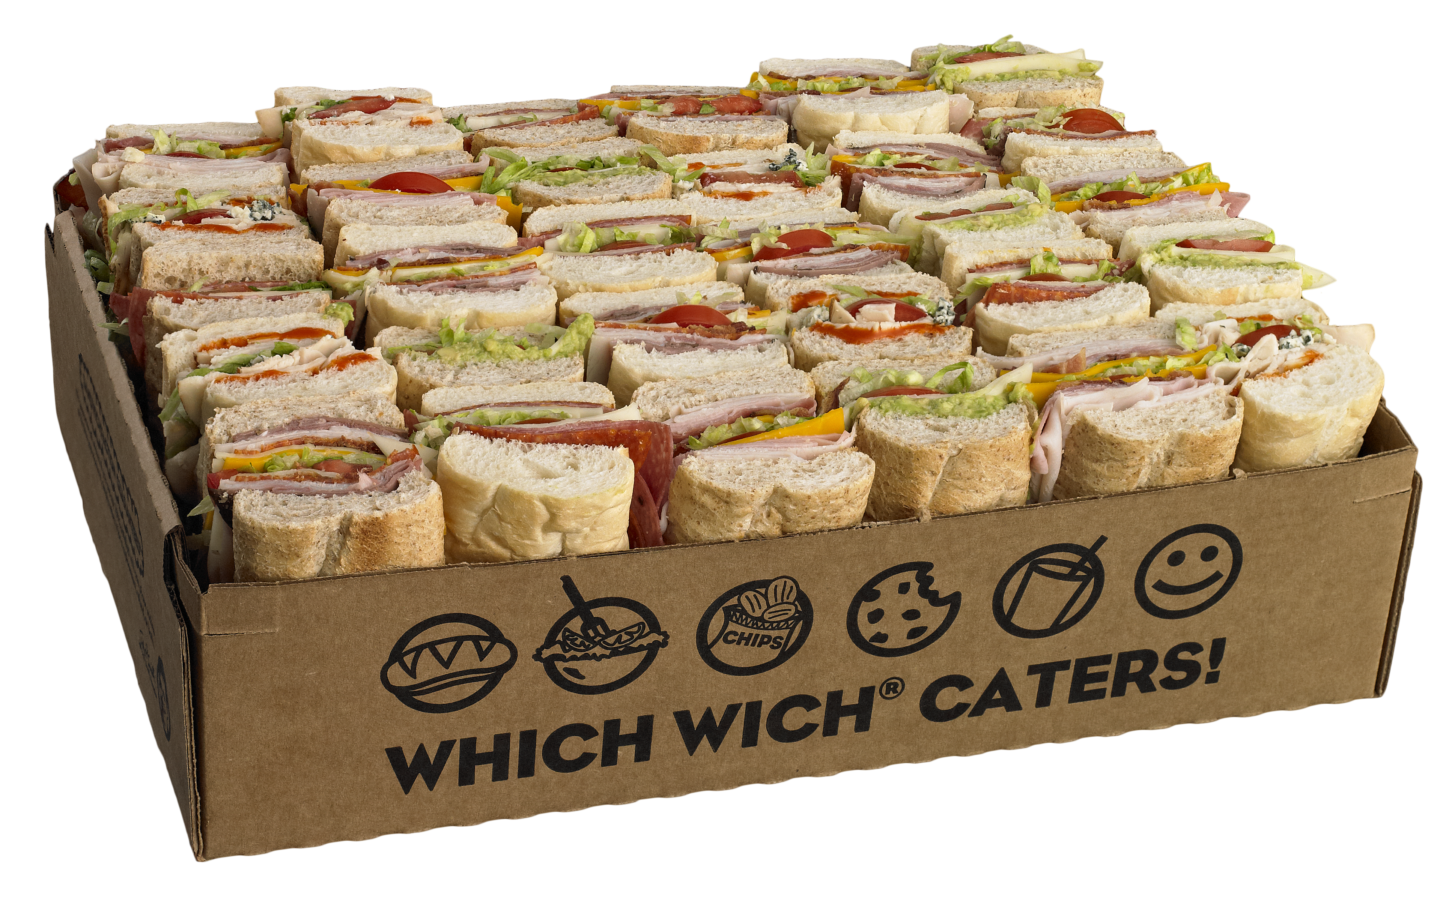 Which wich catering sandwich box